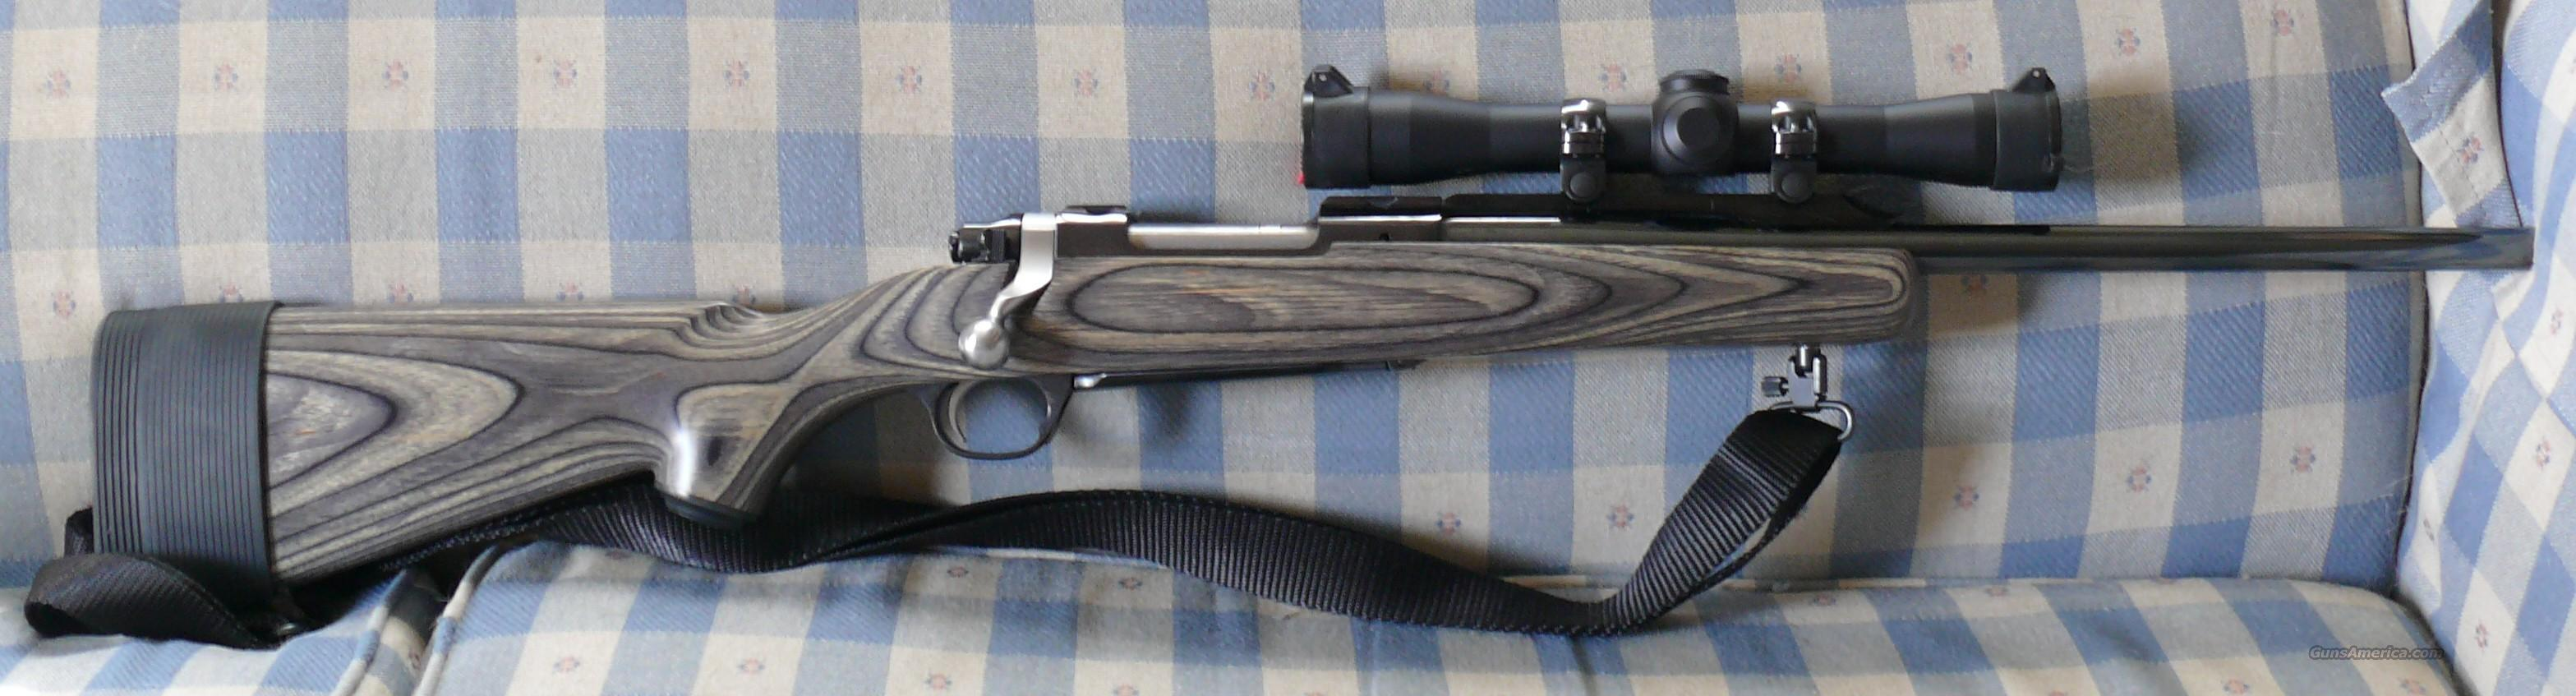 Ruger .300 WSM Frontier Rifle  Guns > Rifles > Ruger Rifles > Model 77